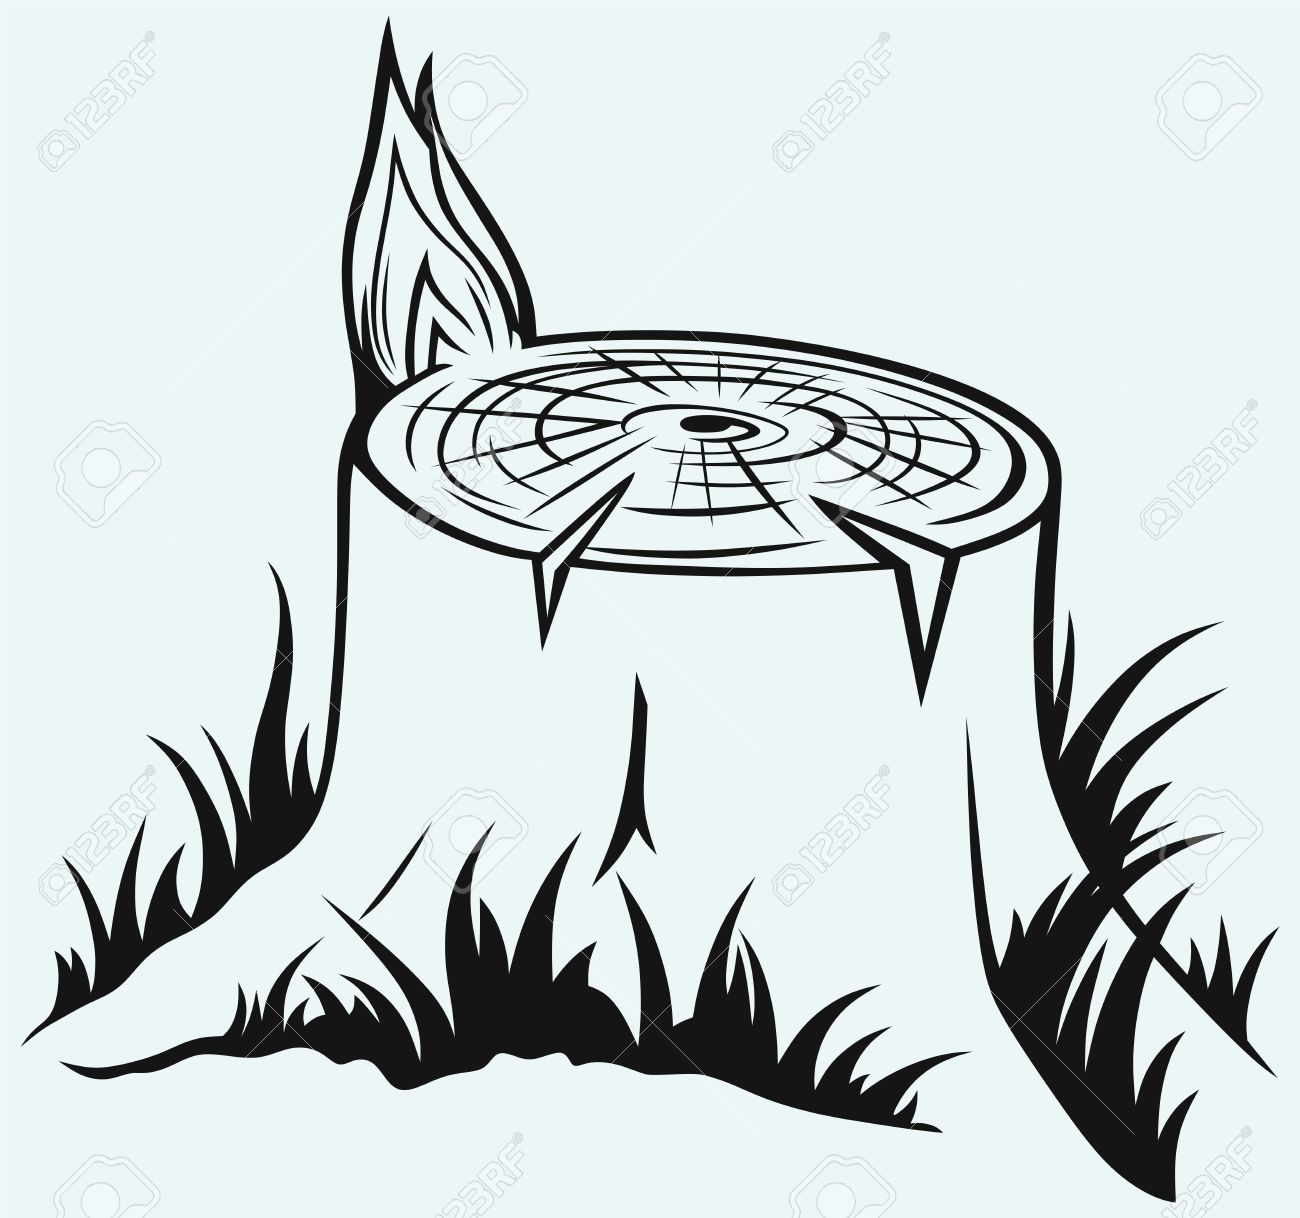 Tree stump clipart.